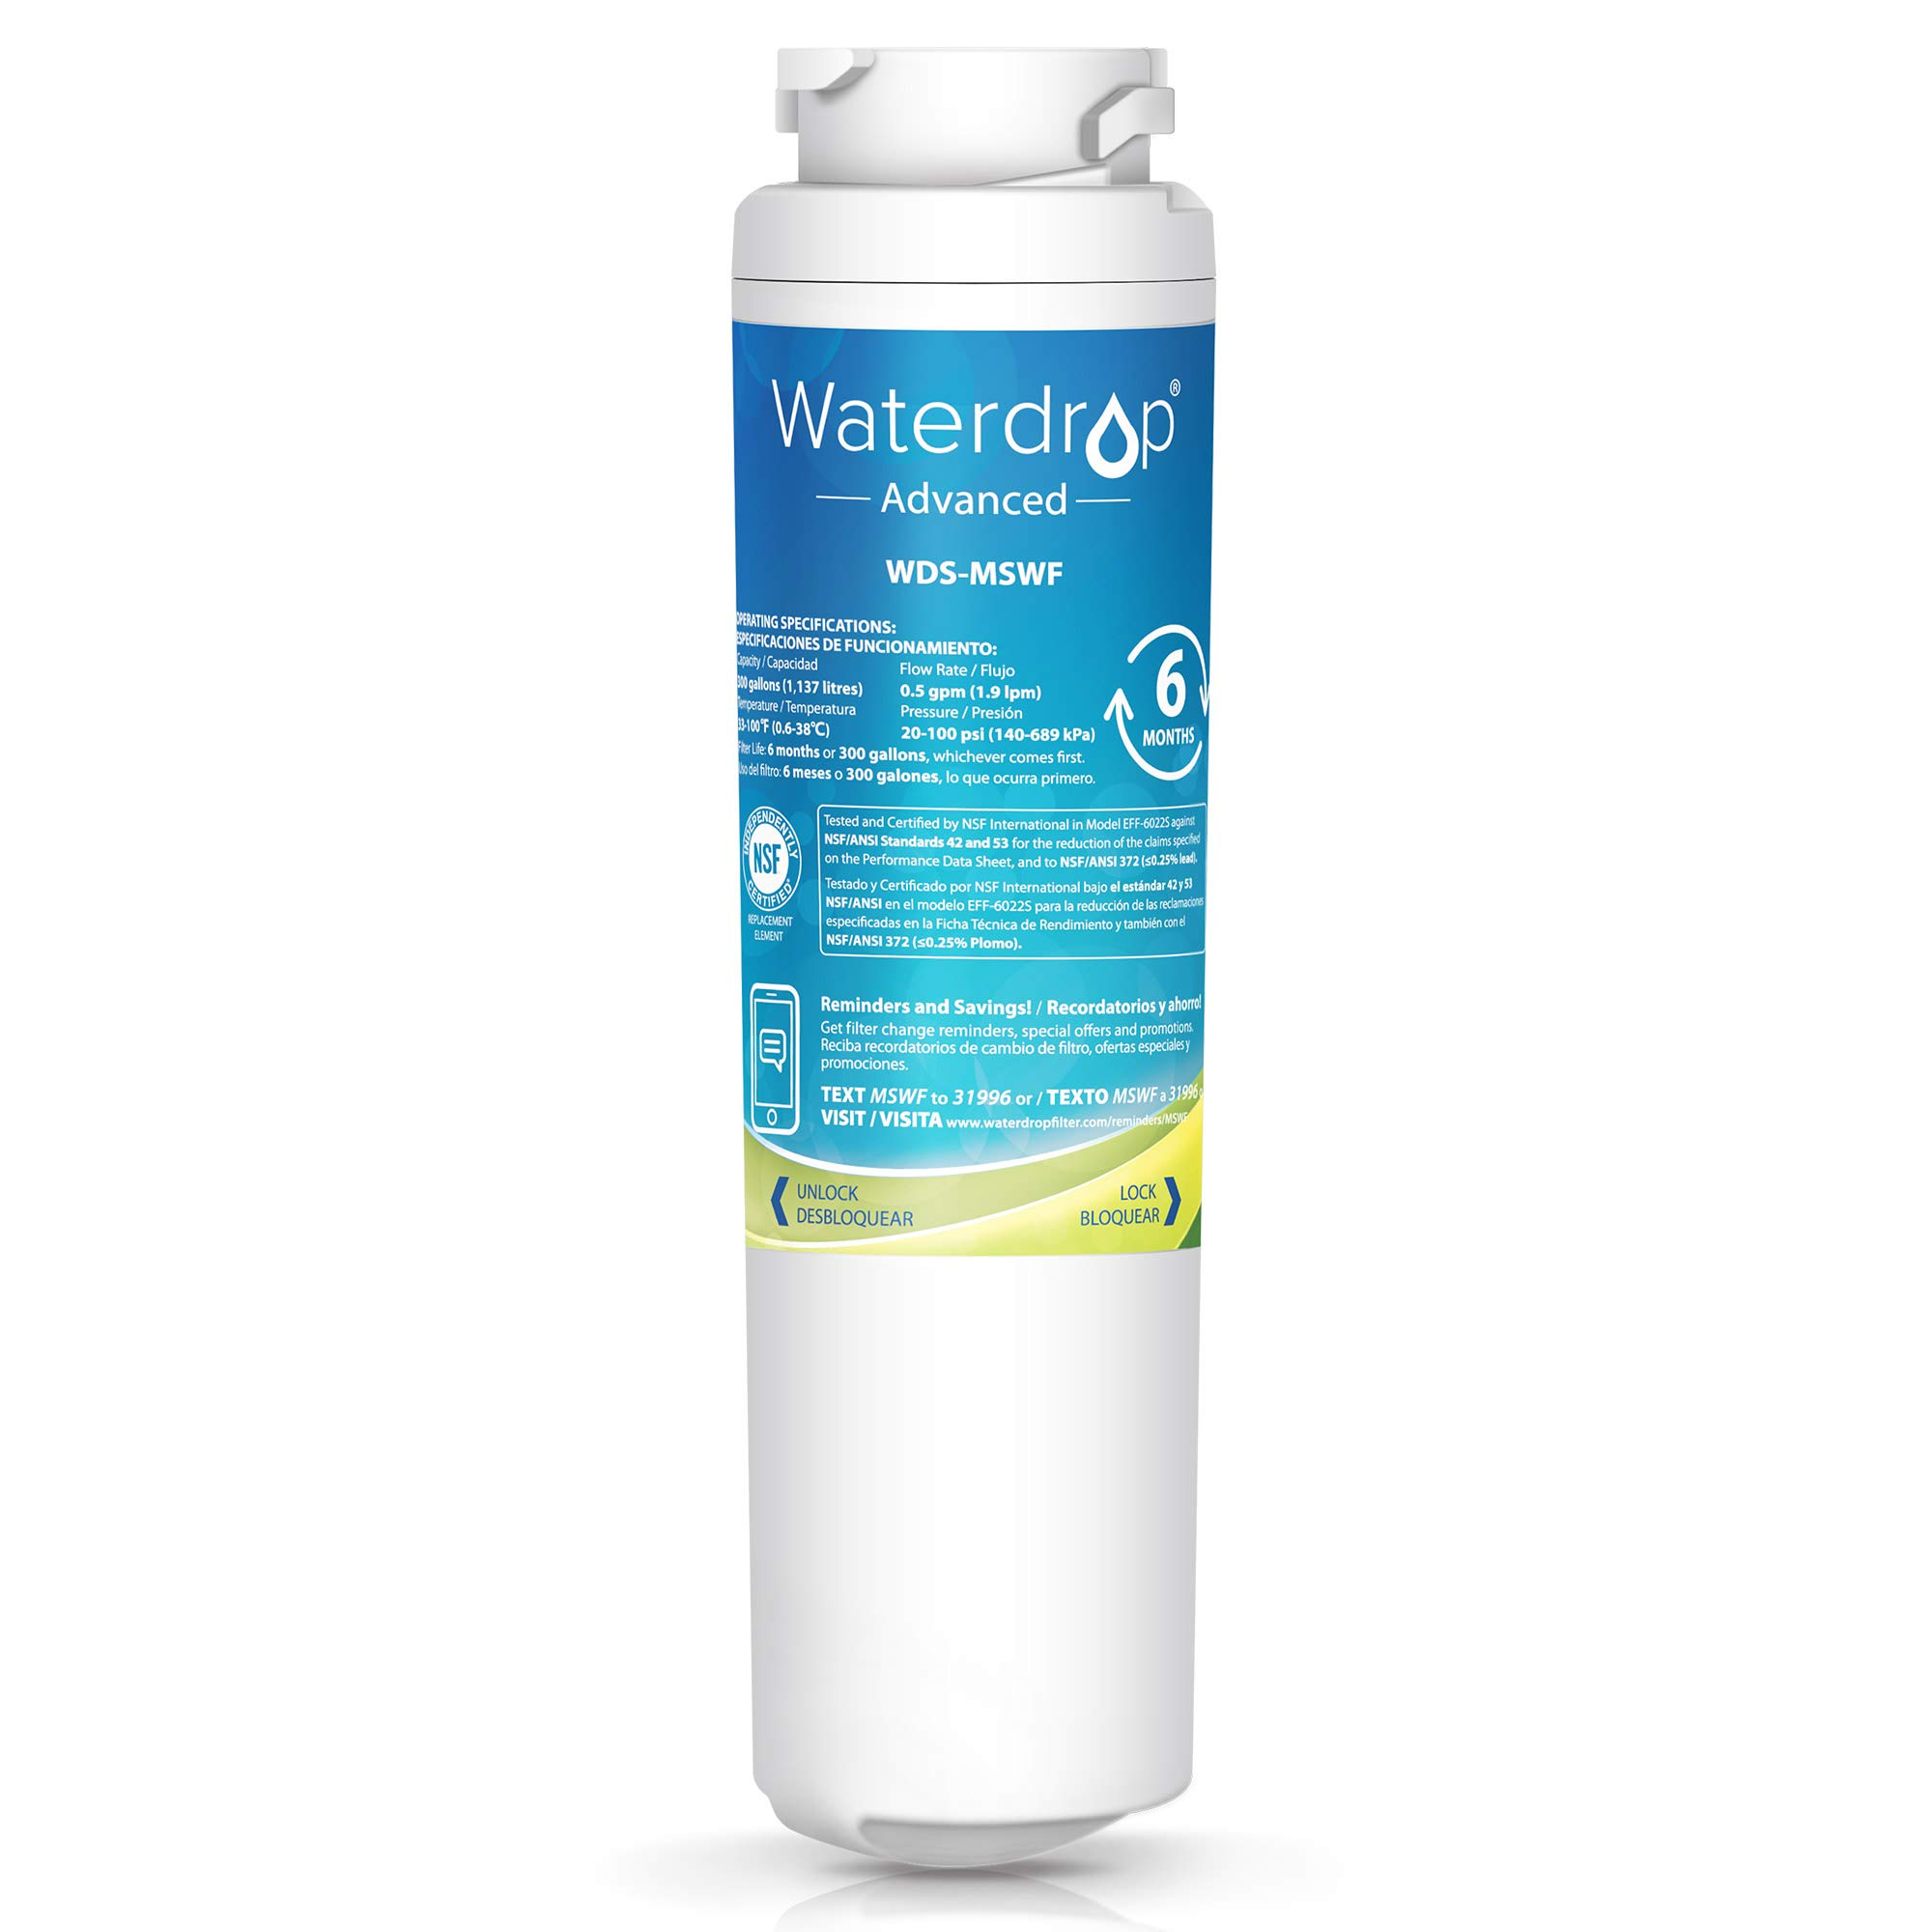 Waterdrop NSF 53&42 Certified MSWF Replacement Refrigerator Water Filter, Compatible with GE MSWF, 101820A, 101821B, 101821-B, Advanced